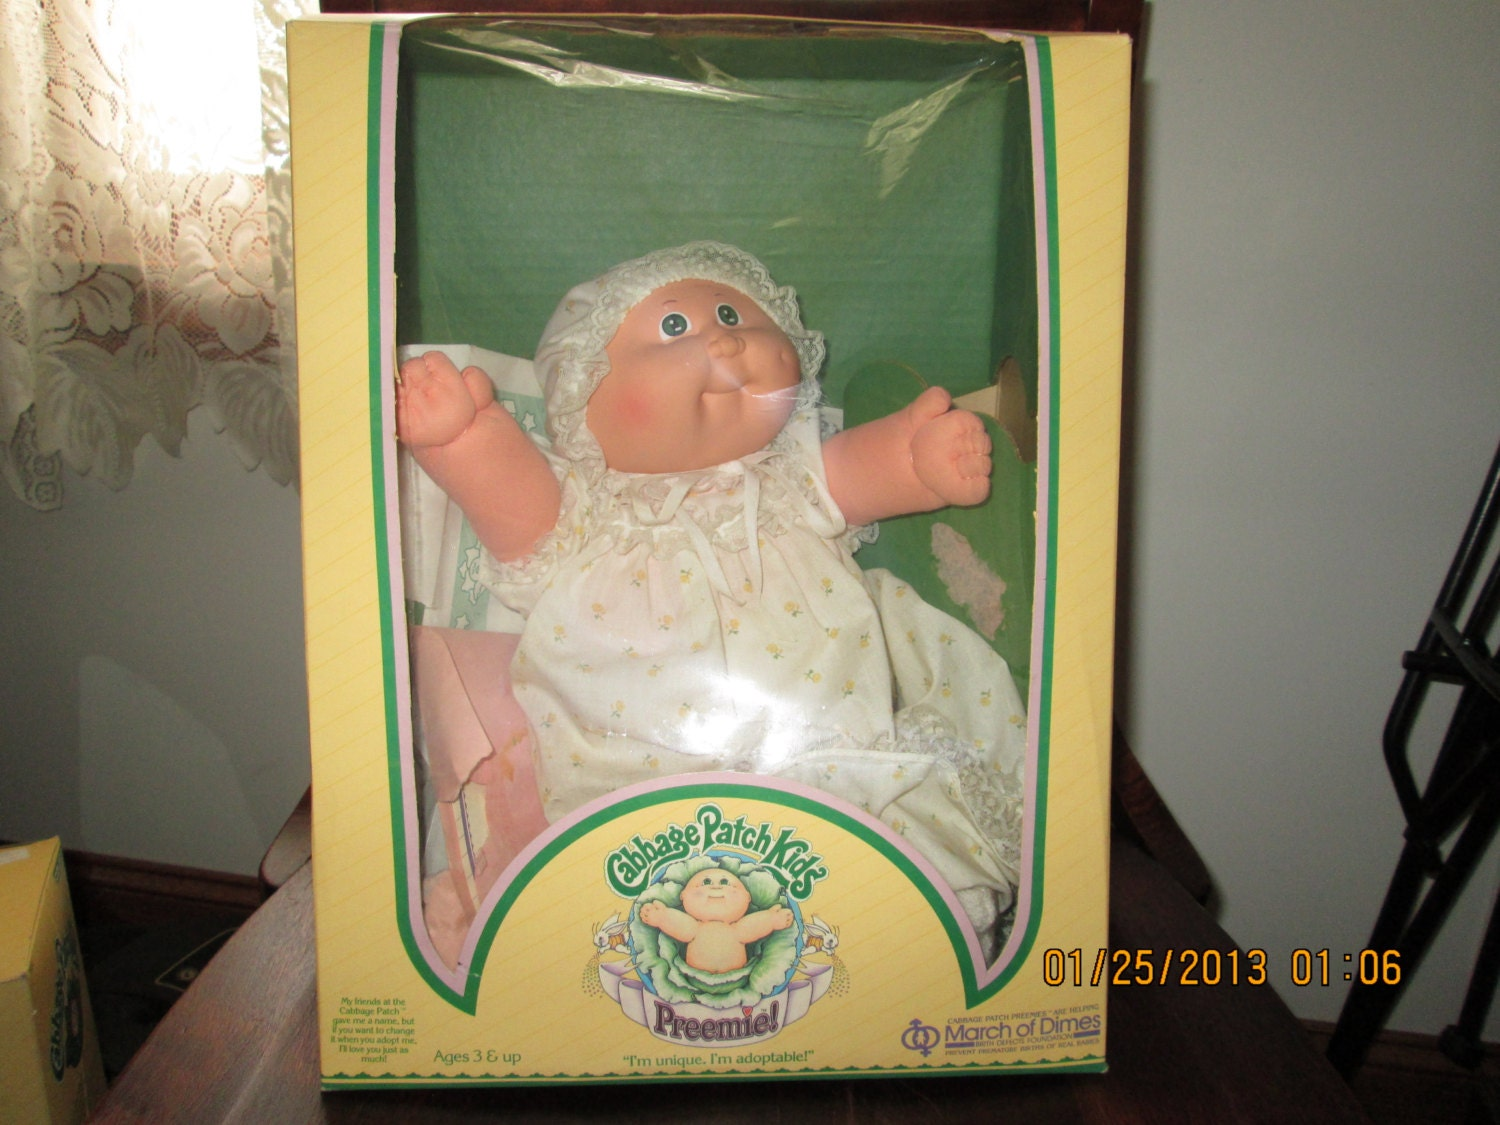 Vintage 1984 Cabbage Patch Kids Preemie Karlotte Justina With